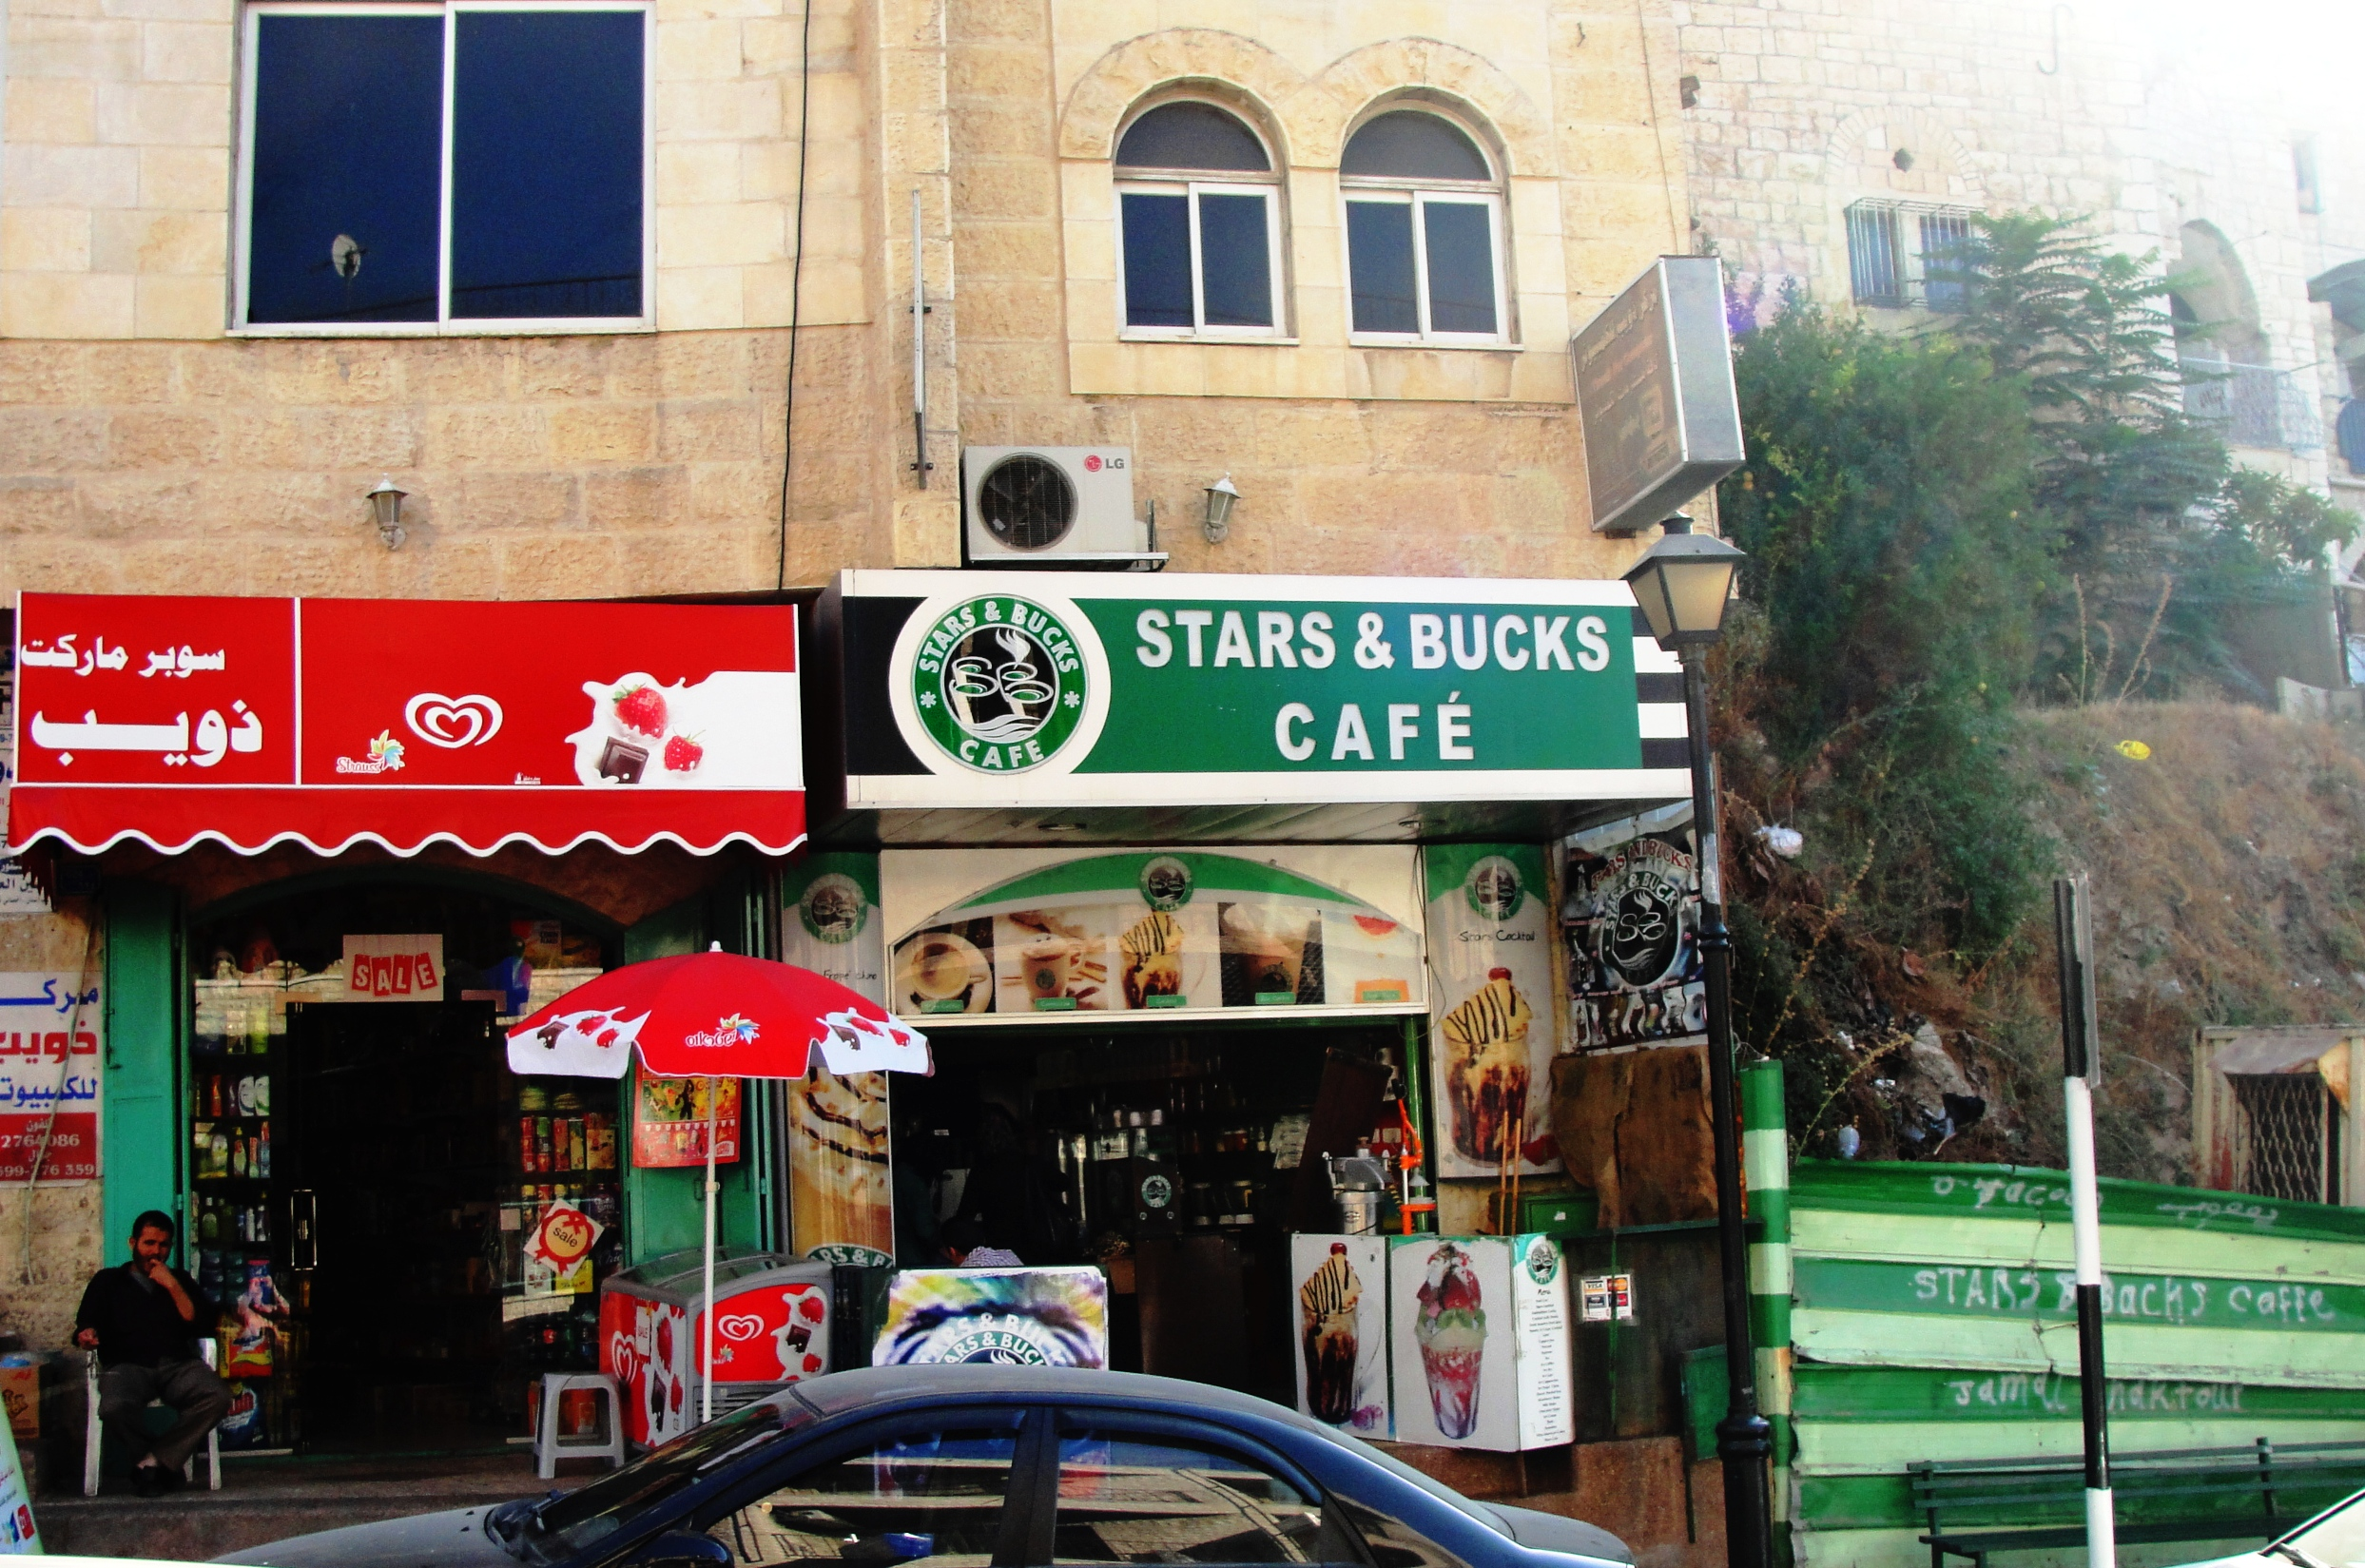 starbucks in israel How come no starbucks in israel bahrain, egypt, jordan, kuwatt, lebanon, morocco, oman, qatar, saudi arabia, united arab emigrates- they all got starbucks.